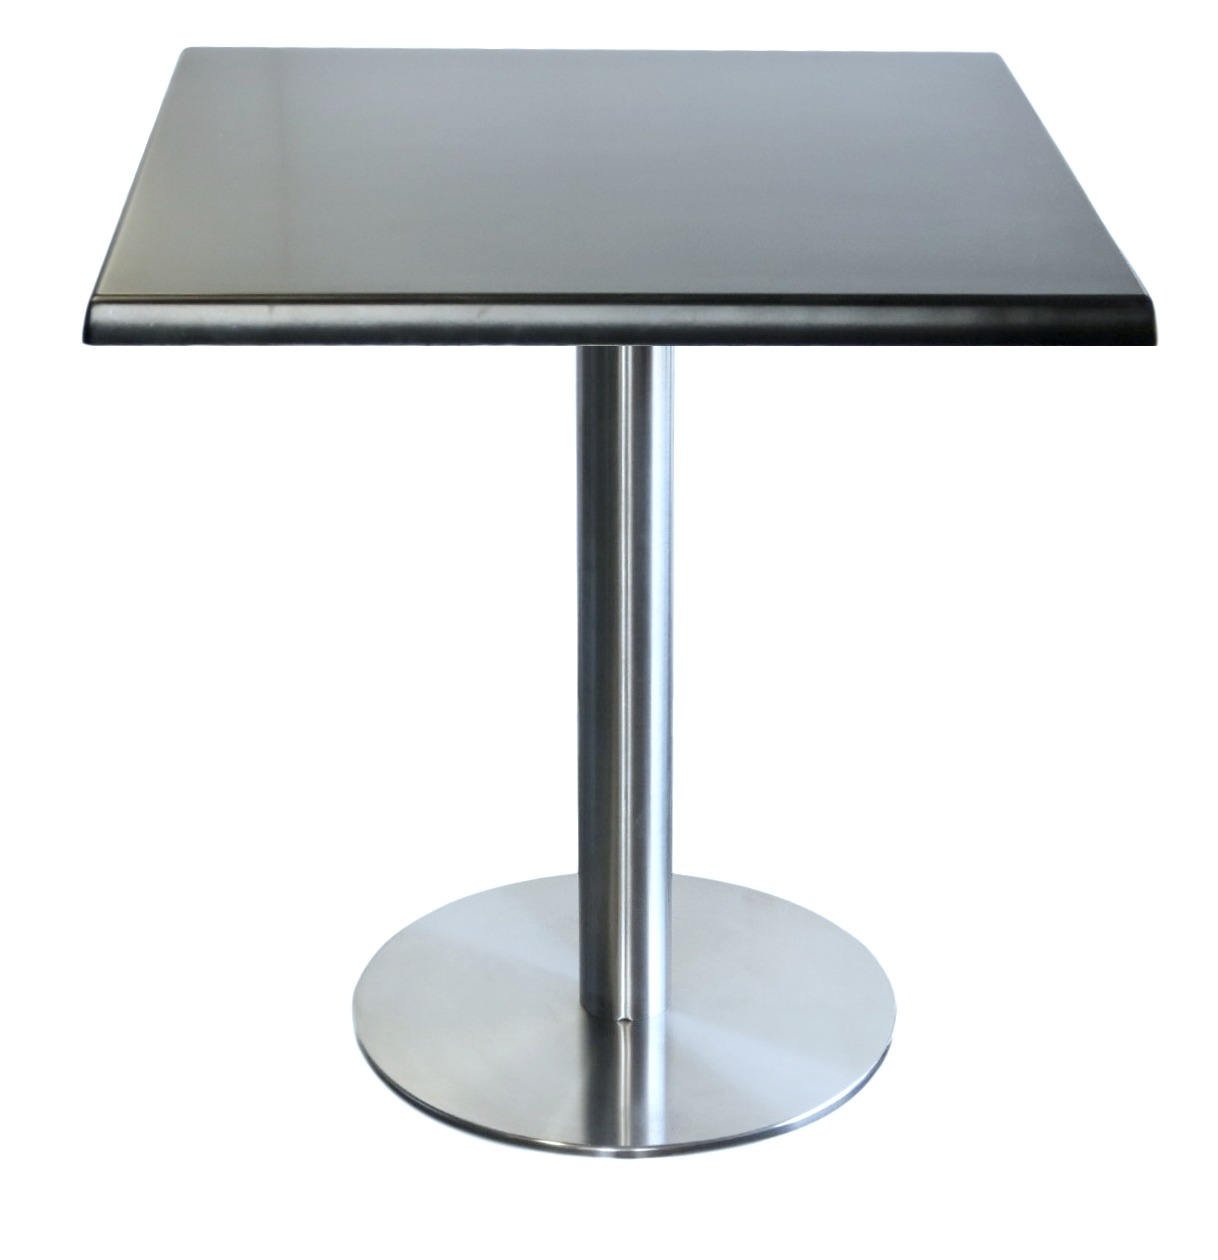 Alexi Table Square